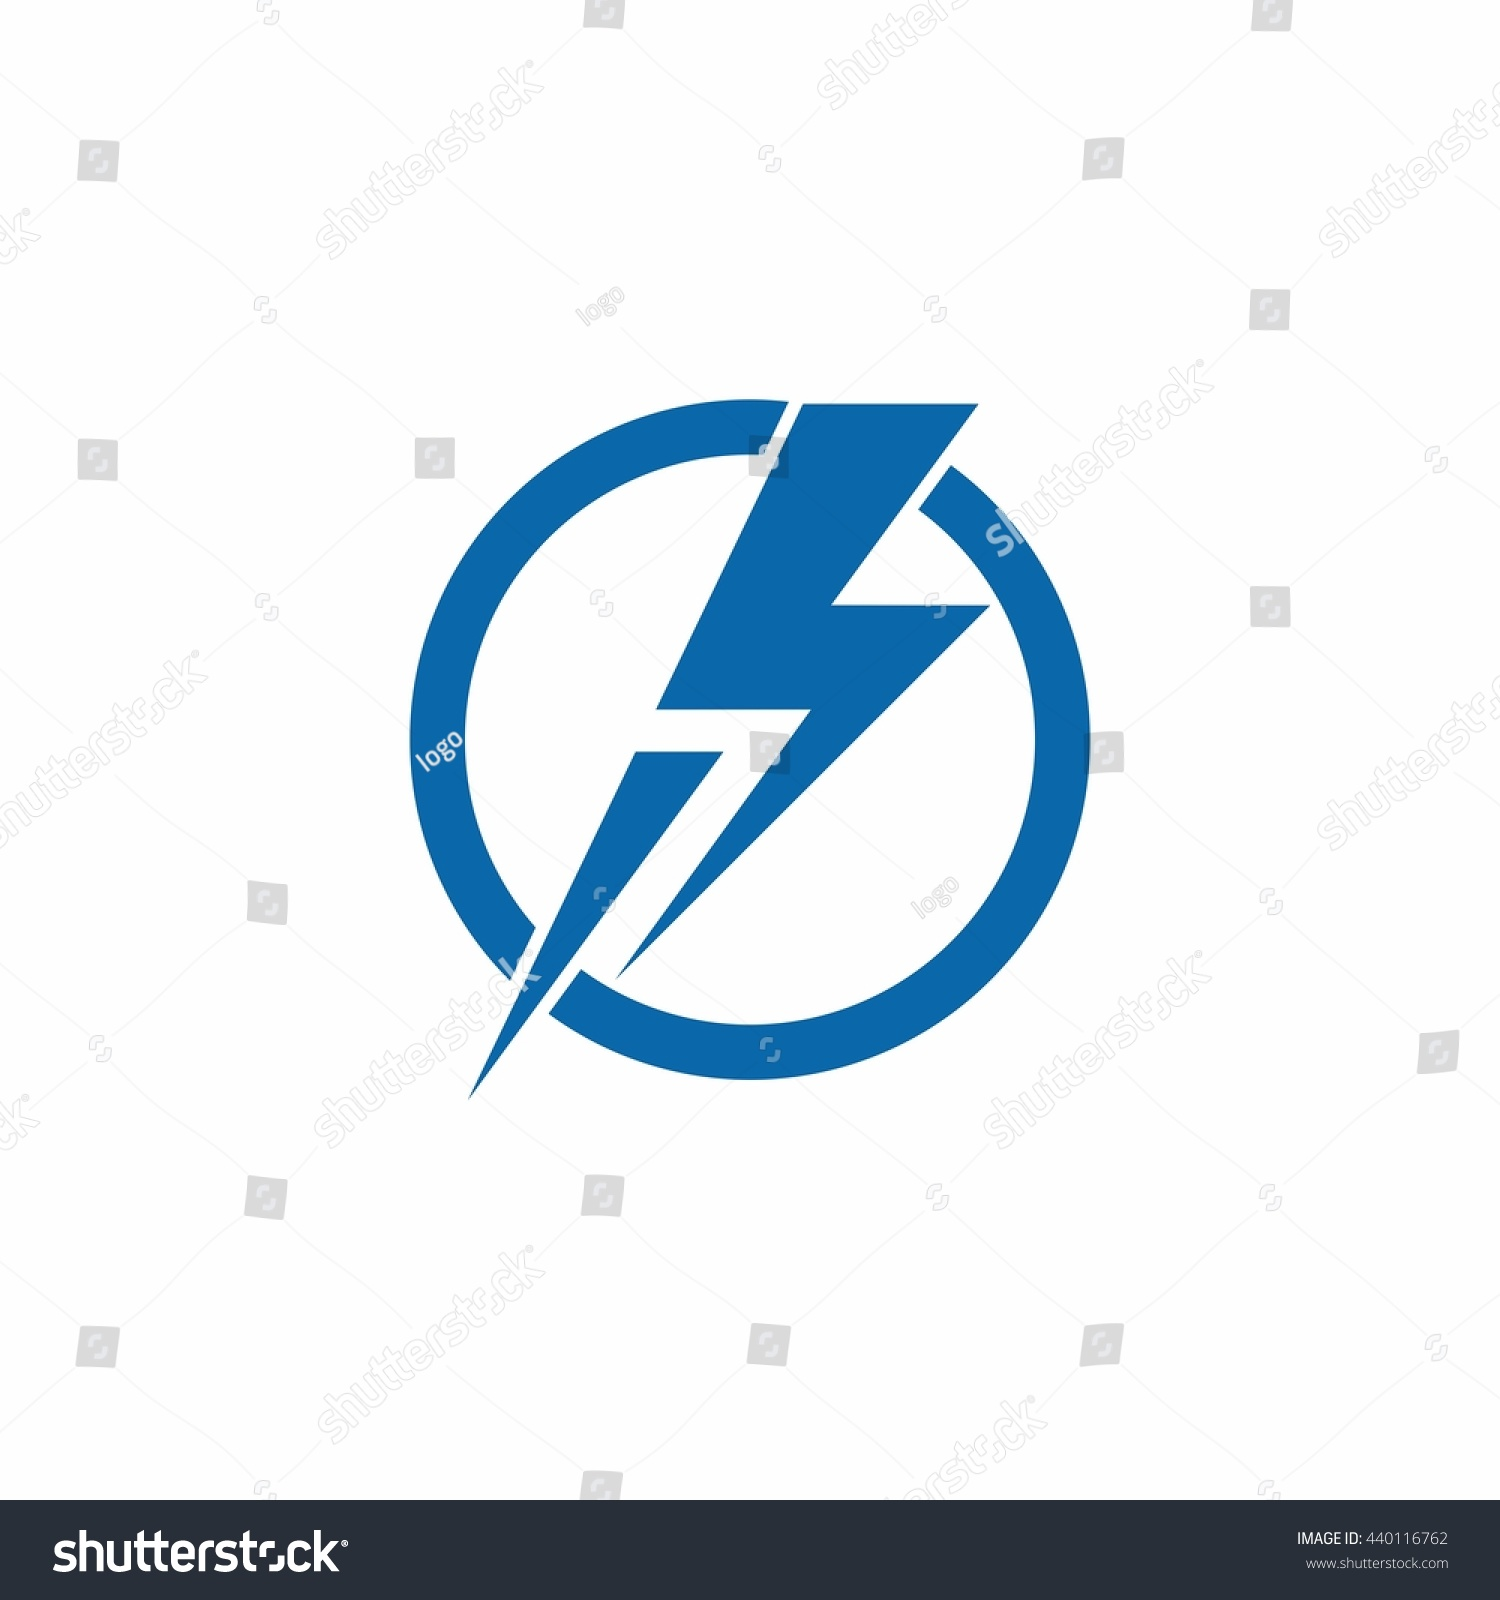 Thunder Power Lightning Circle Run Logo Stock Vector 440116762 ... for Lightning Logo In Circle  53kxo